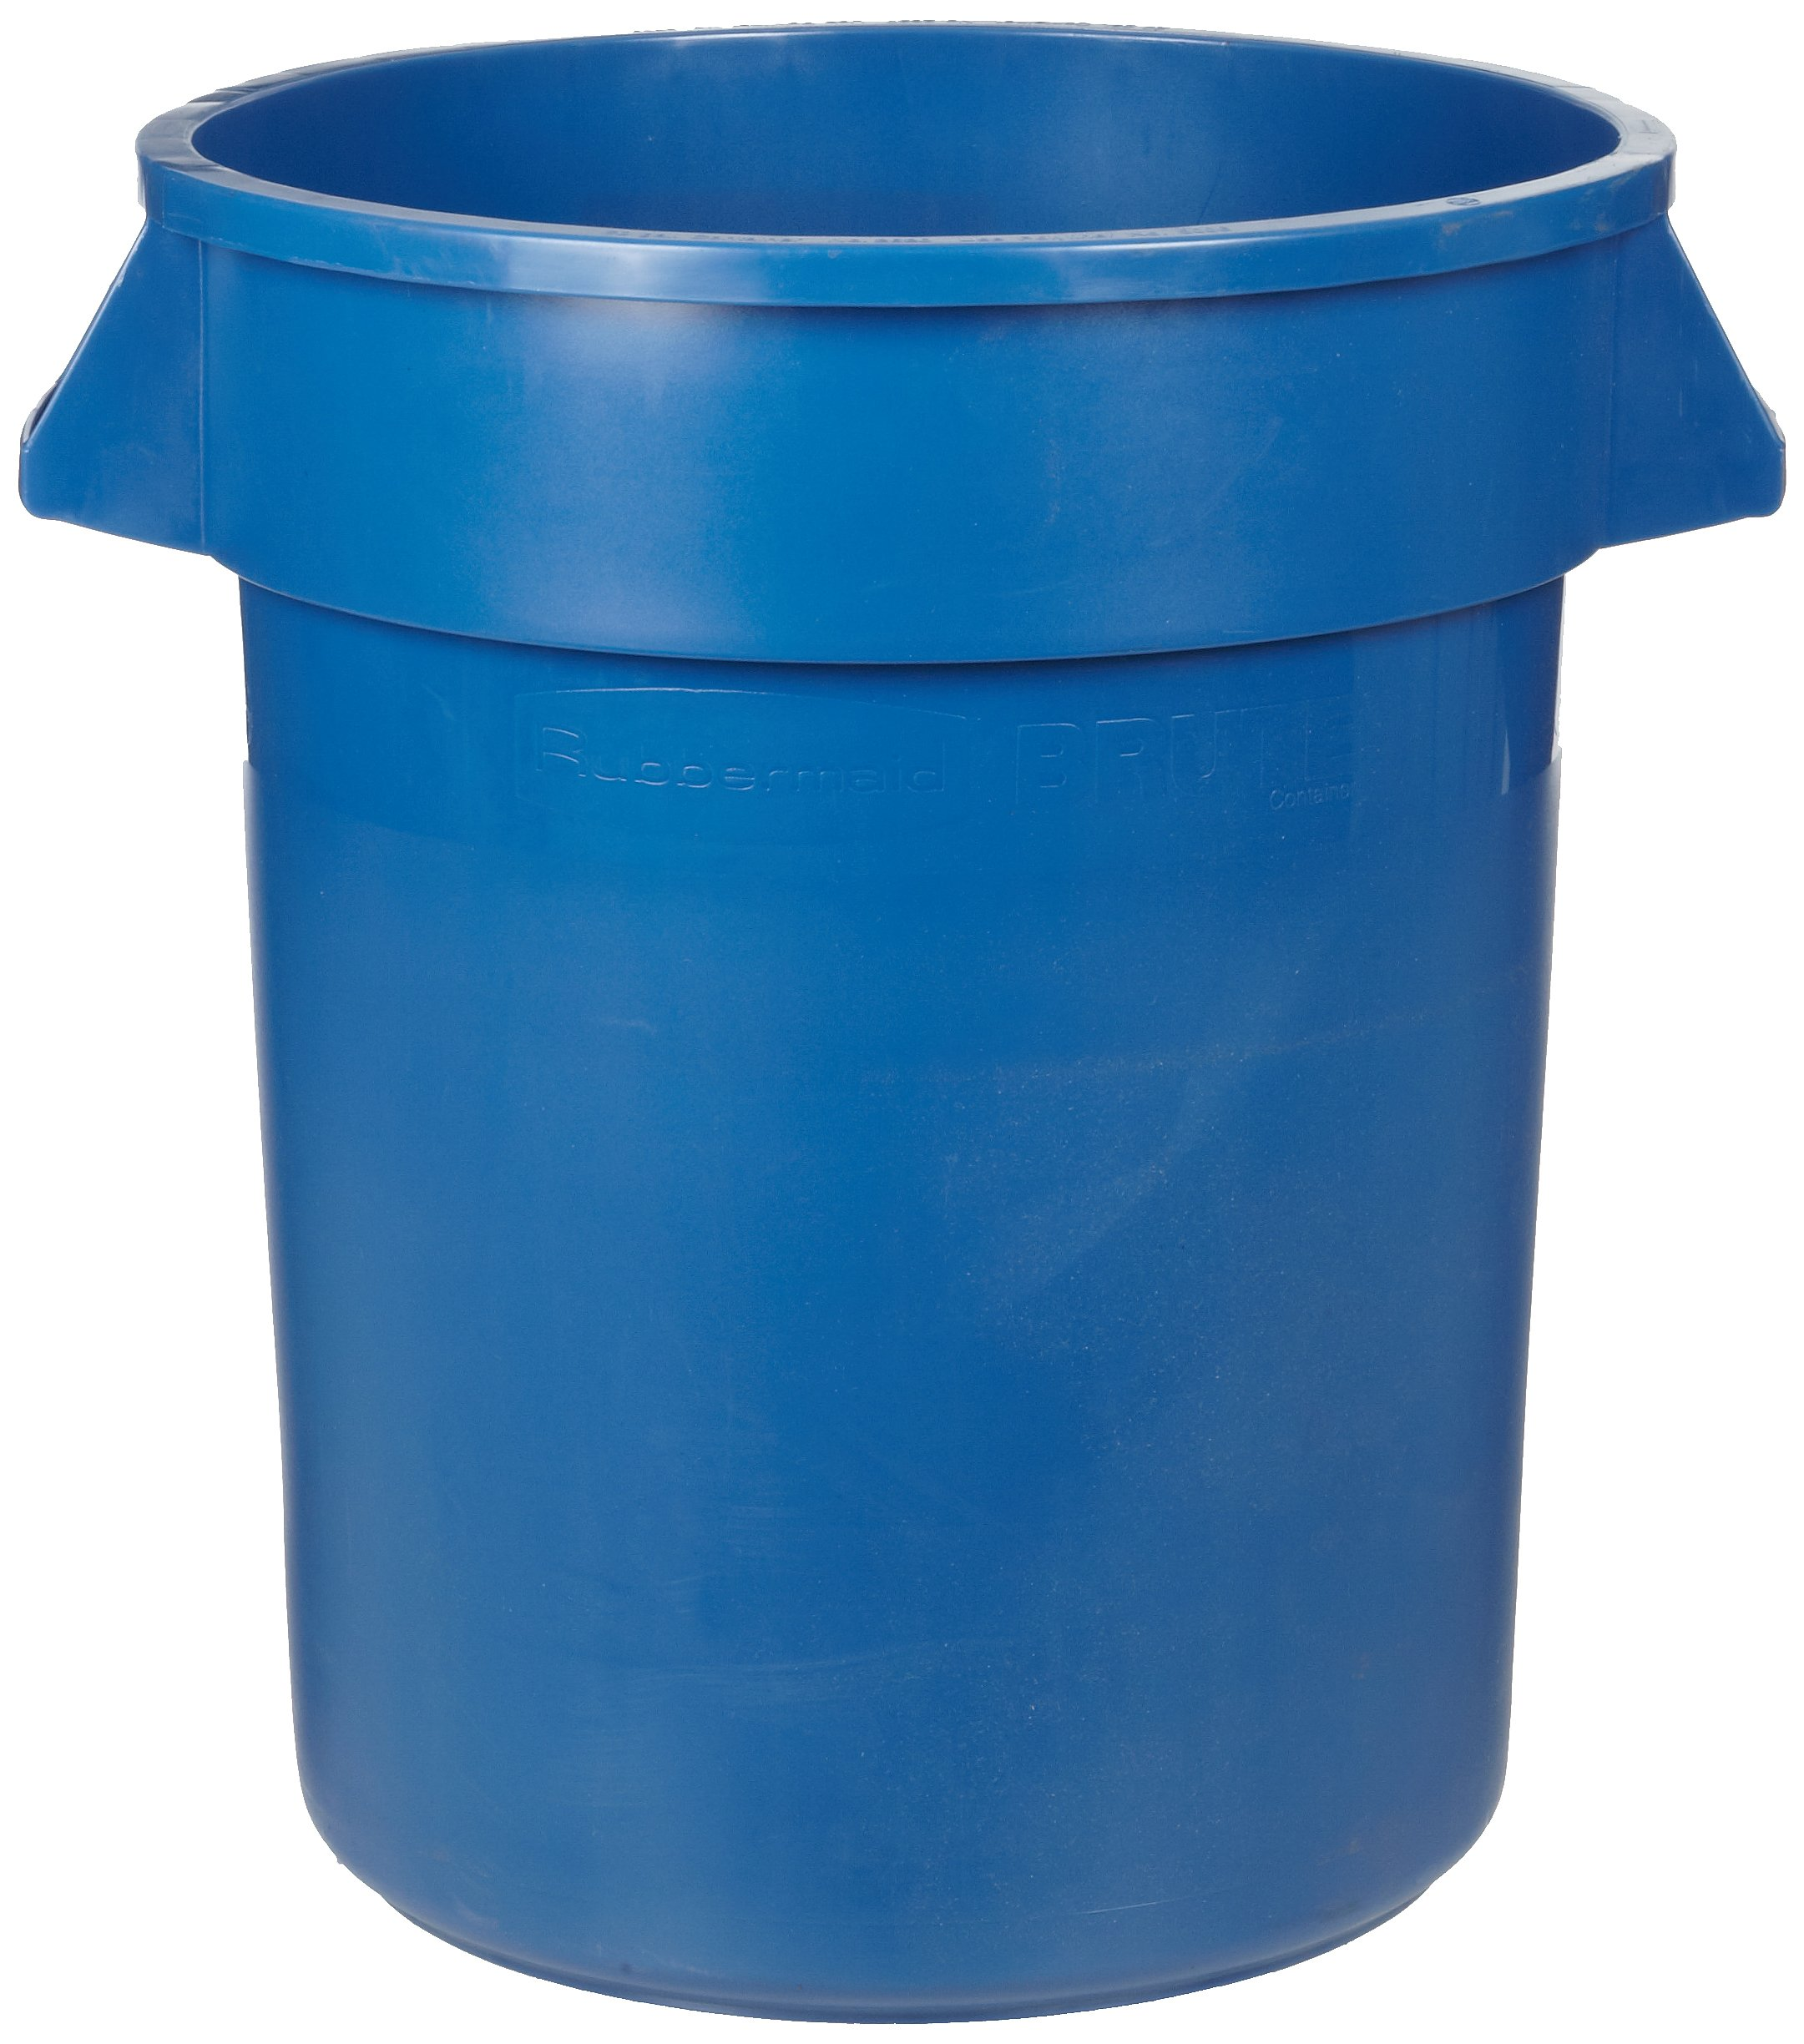 Rubbermaid Commercial 1788472 BRUTE Heavy-Duty Round Waste/Utility Container, with ''BRUTE'' Legend, 32-gallon, Green